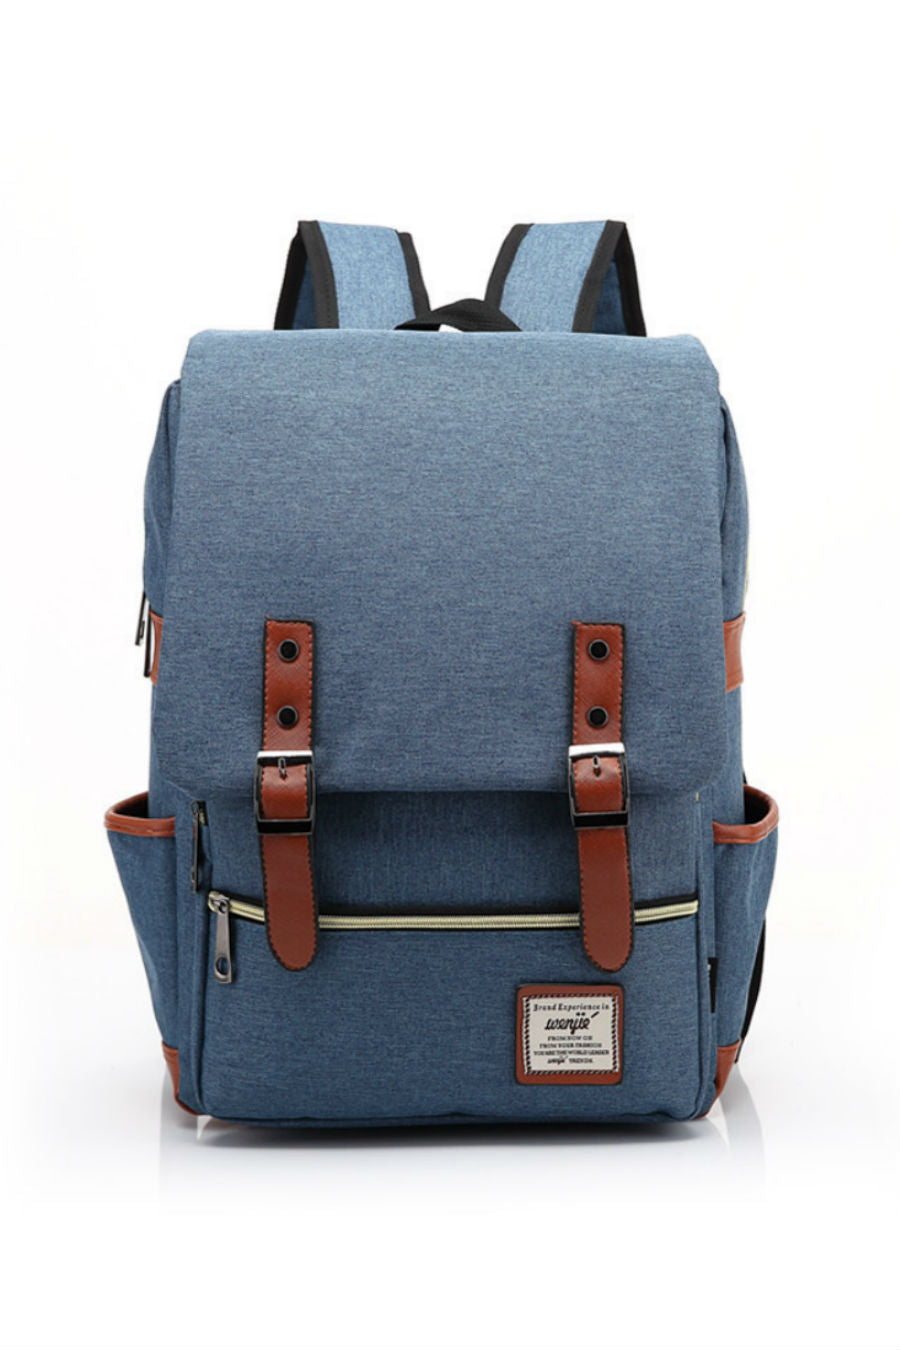 Blu Travel Backpack Big Capacity